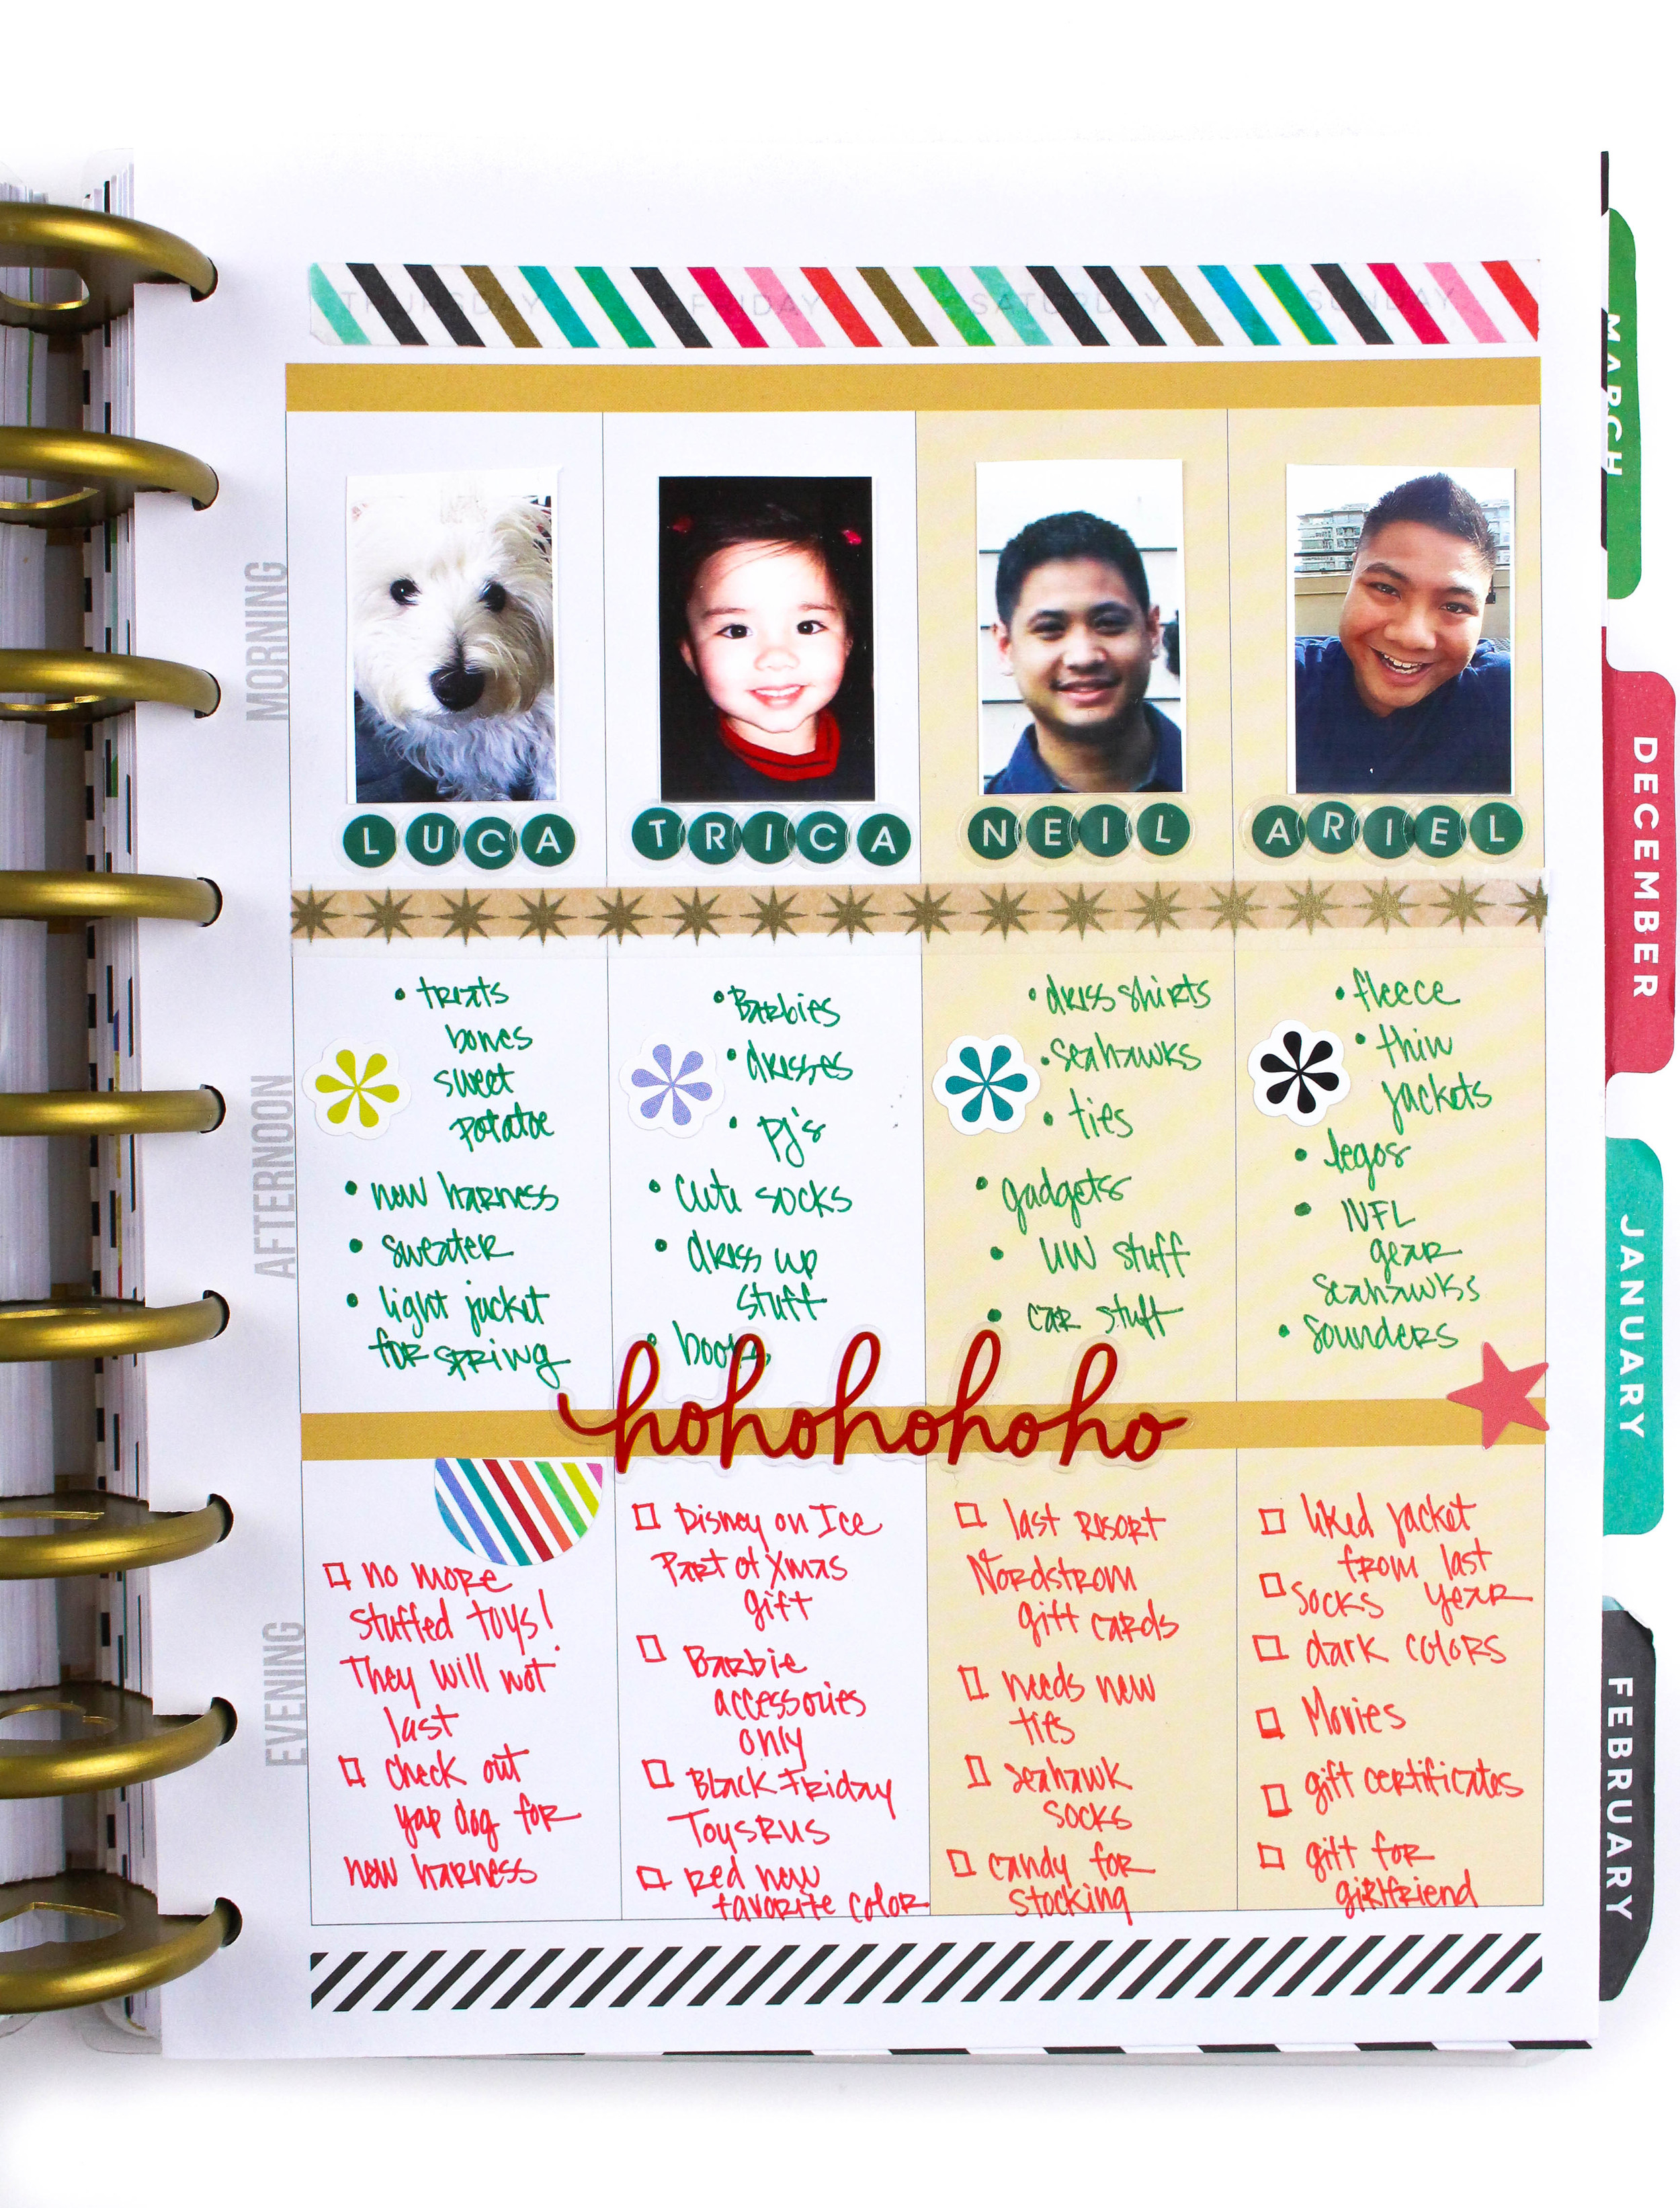 Christmas Wish List Ideas.The Happy Planner Weekly Layout Christmas Wish List Me